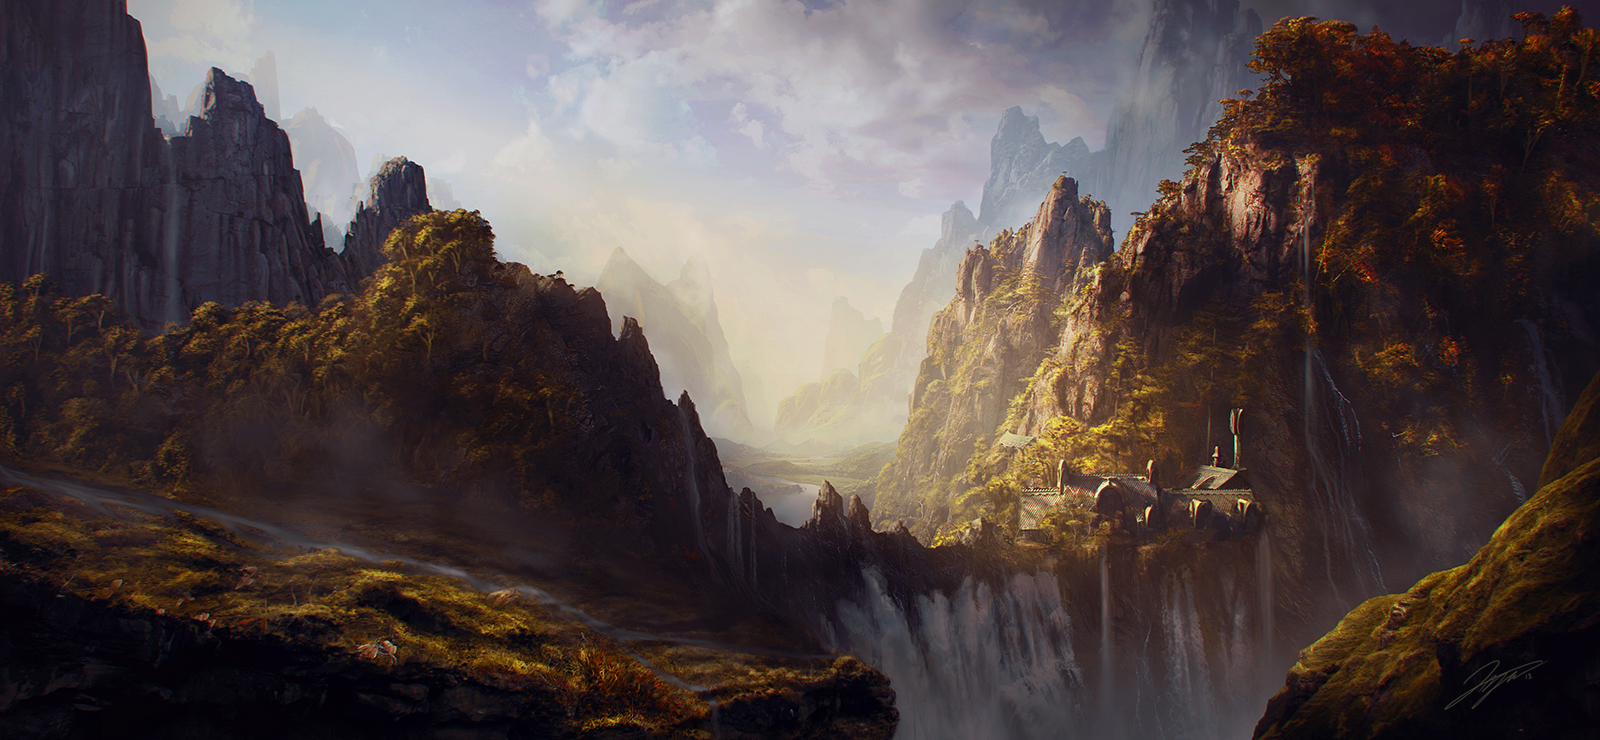 Hobbit gmail theme - Done For A Matte Painting Challenge At Cgchannel Com The Theme Was The Hobbit